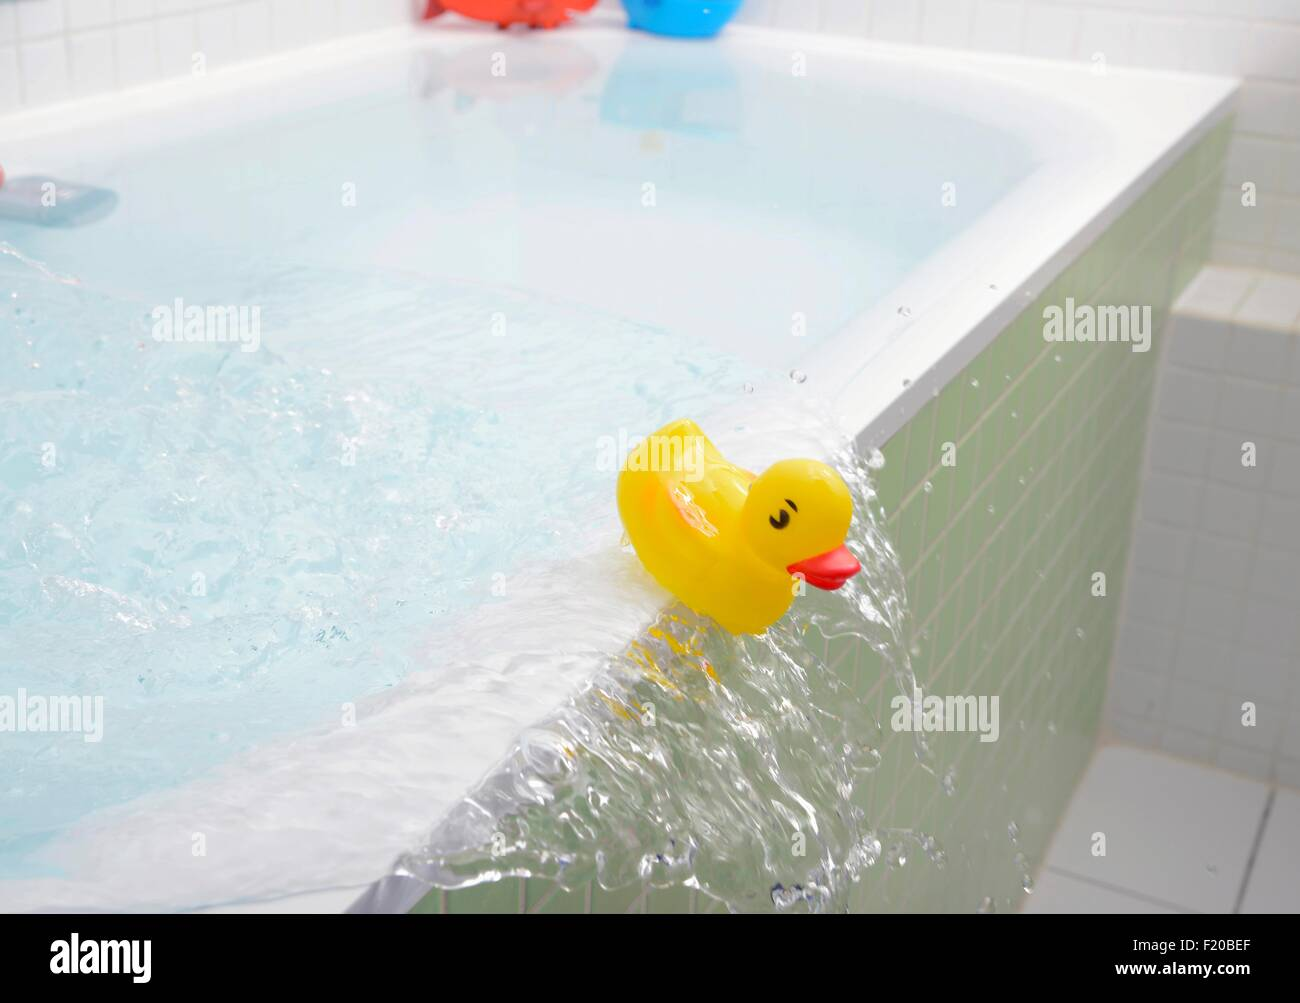 rubber duck falling out of bath overflowing with water stock photo